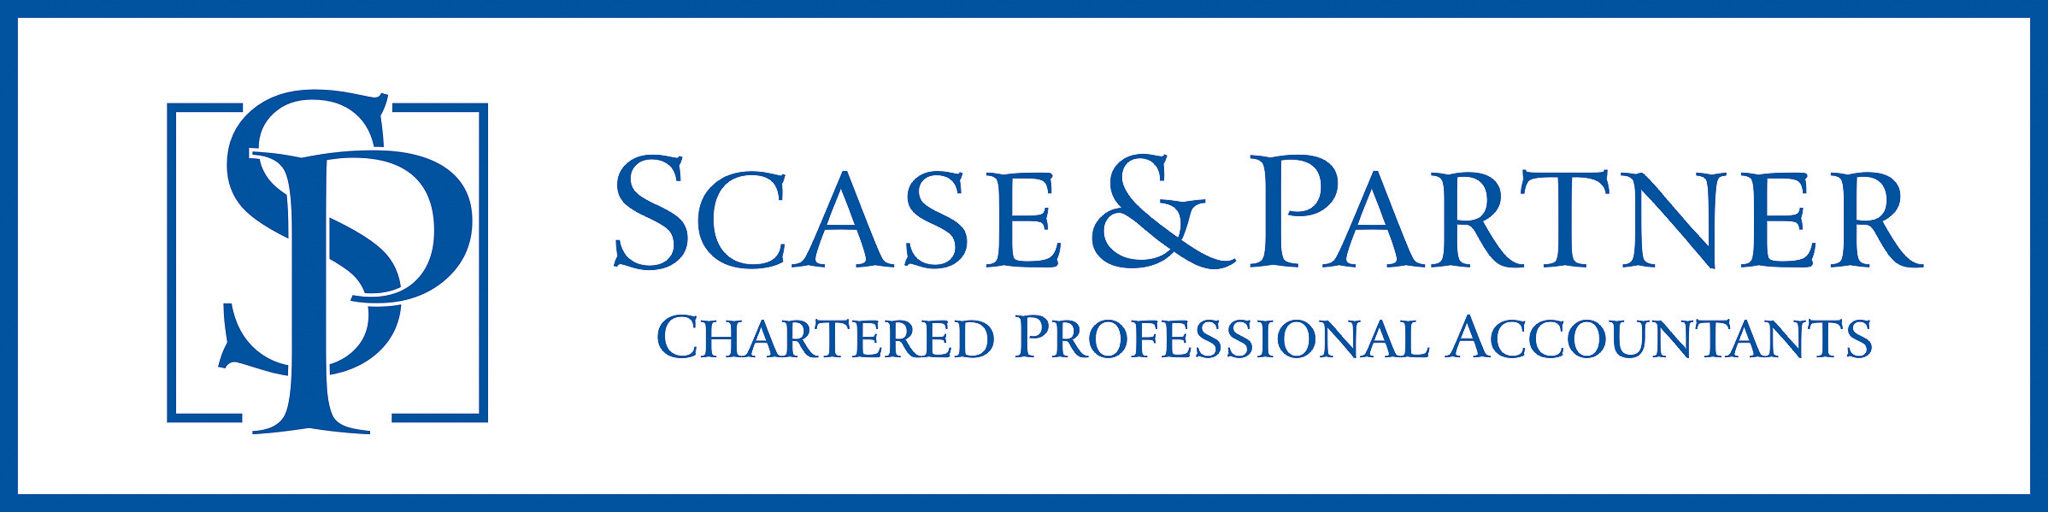 Scase & Partner Chartered Professional Accountants